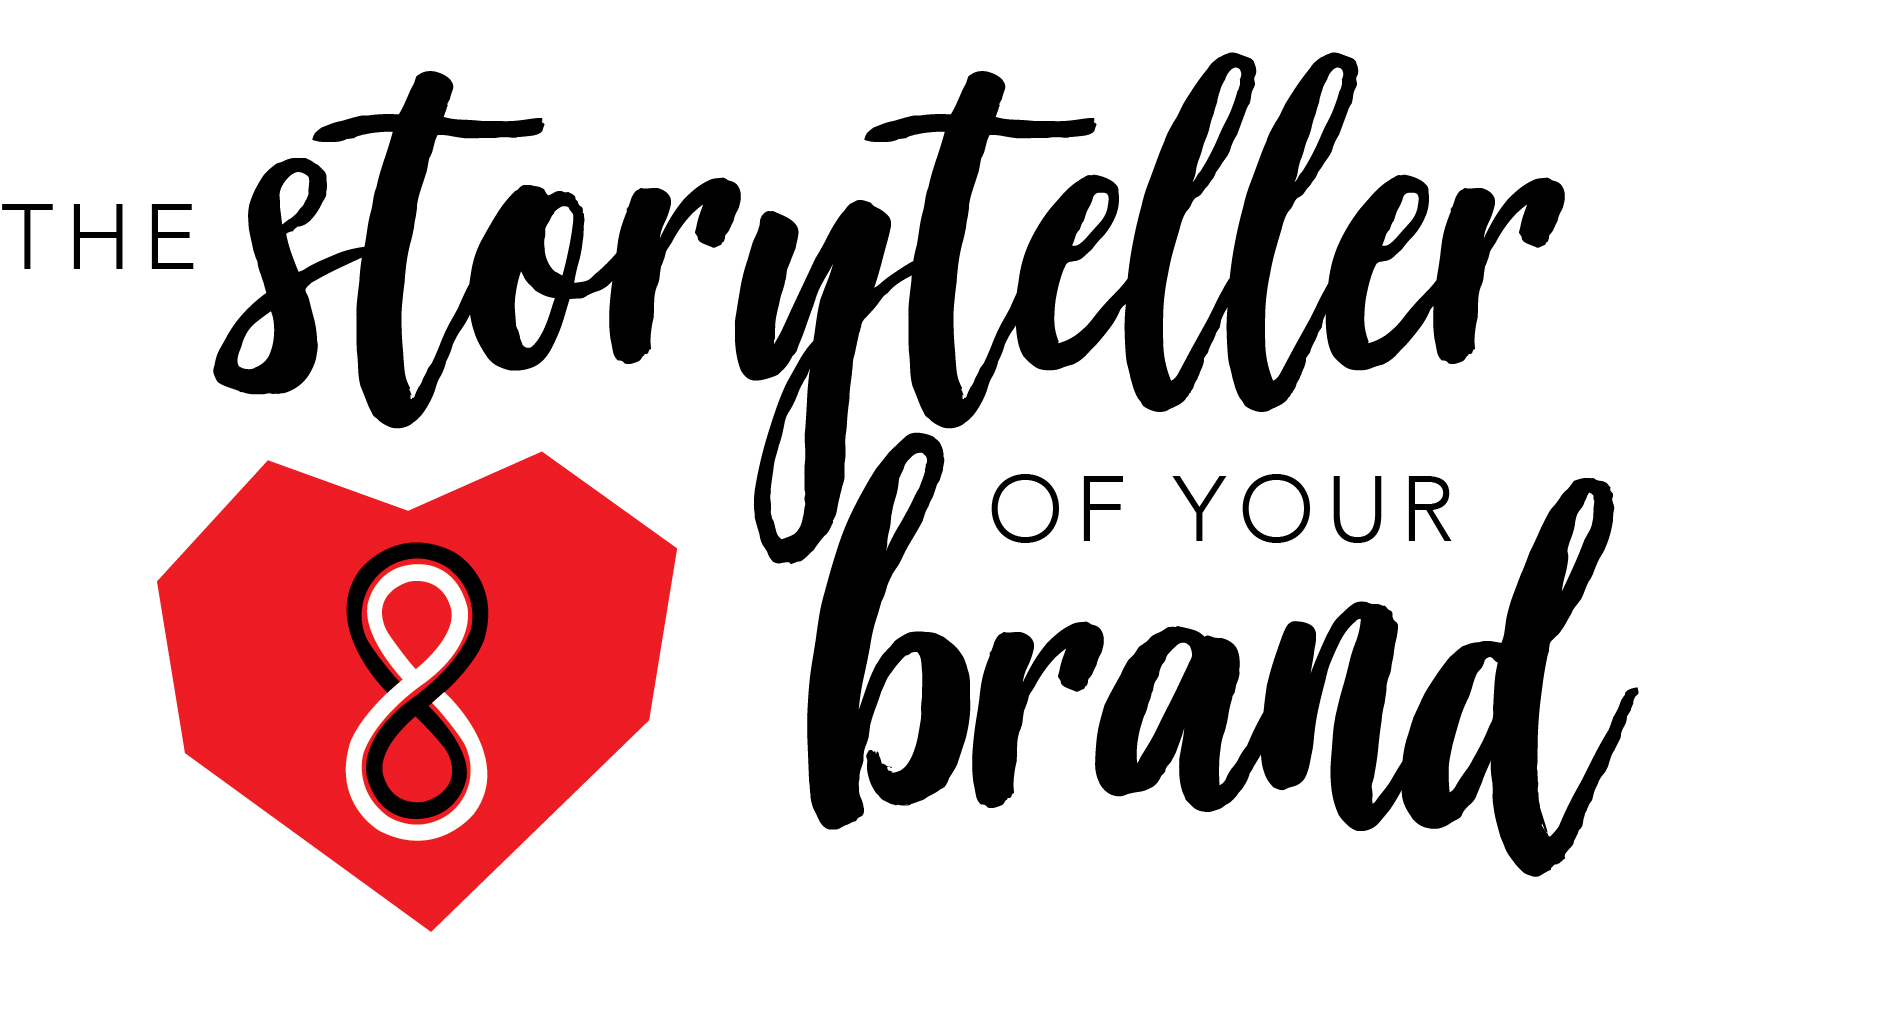 STORYTELLER_OF_YOUR_BRAND_Logo.jpg